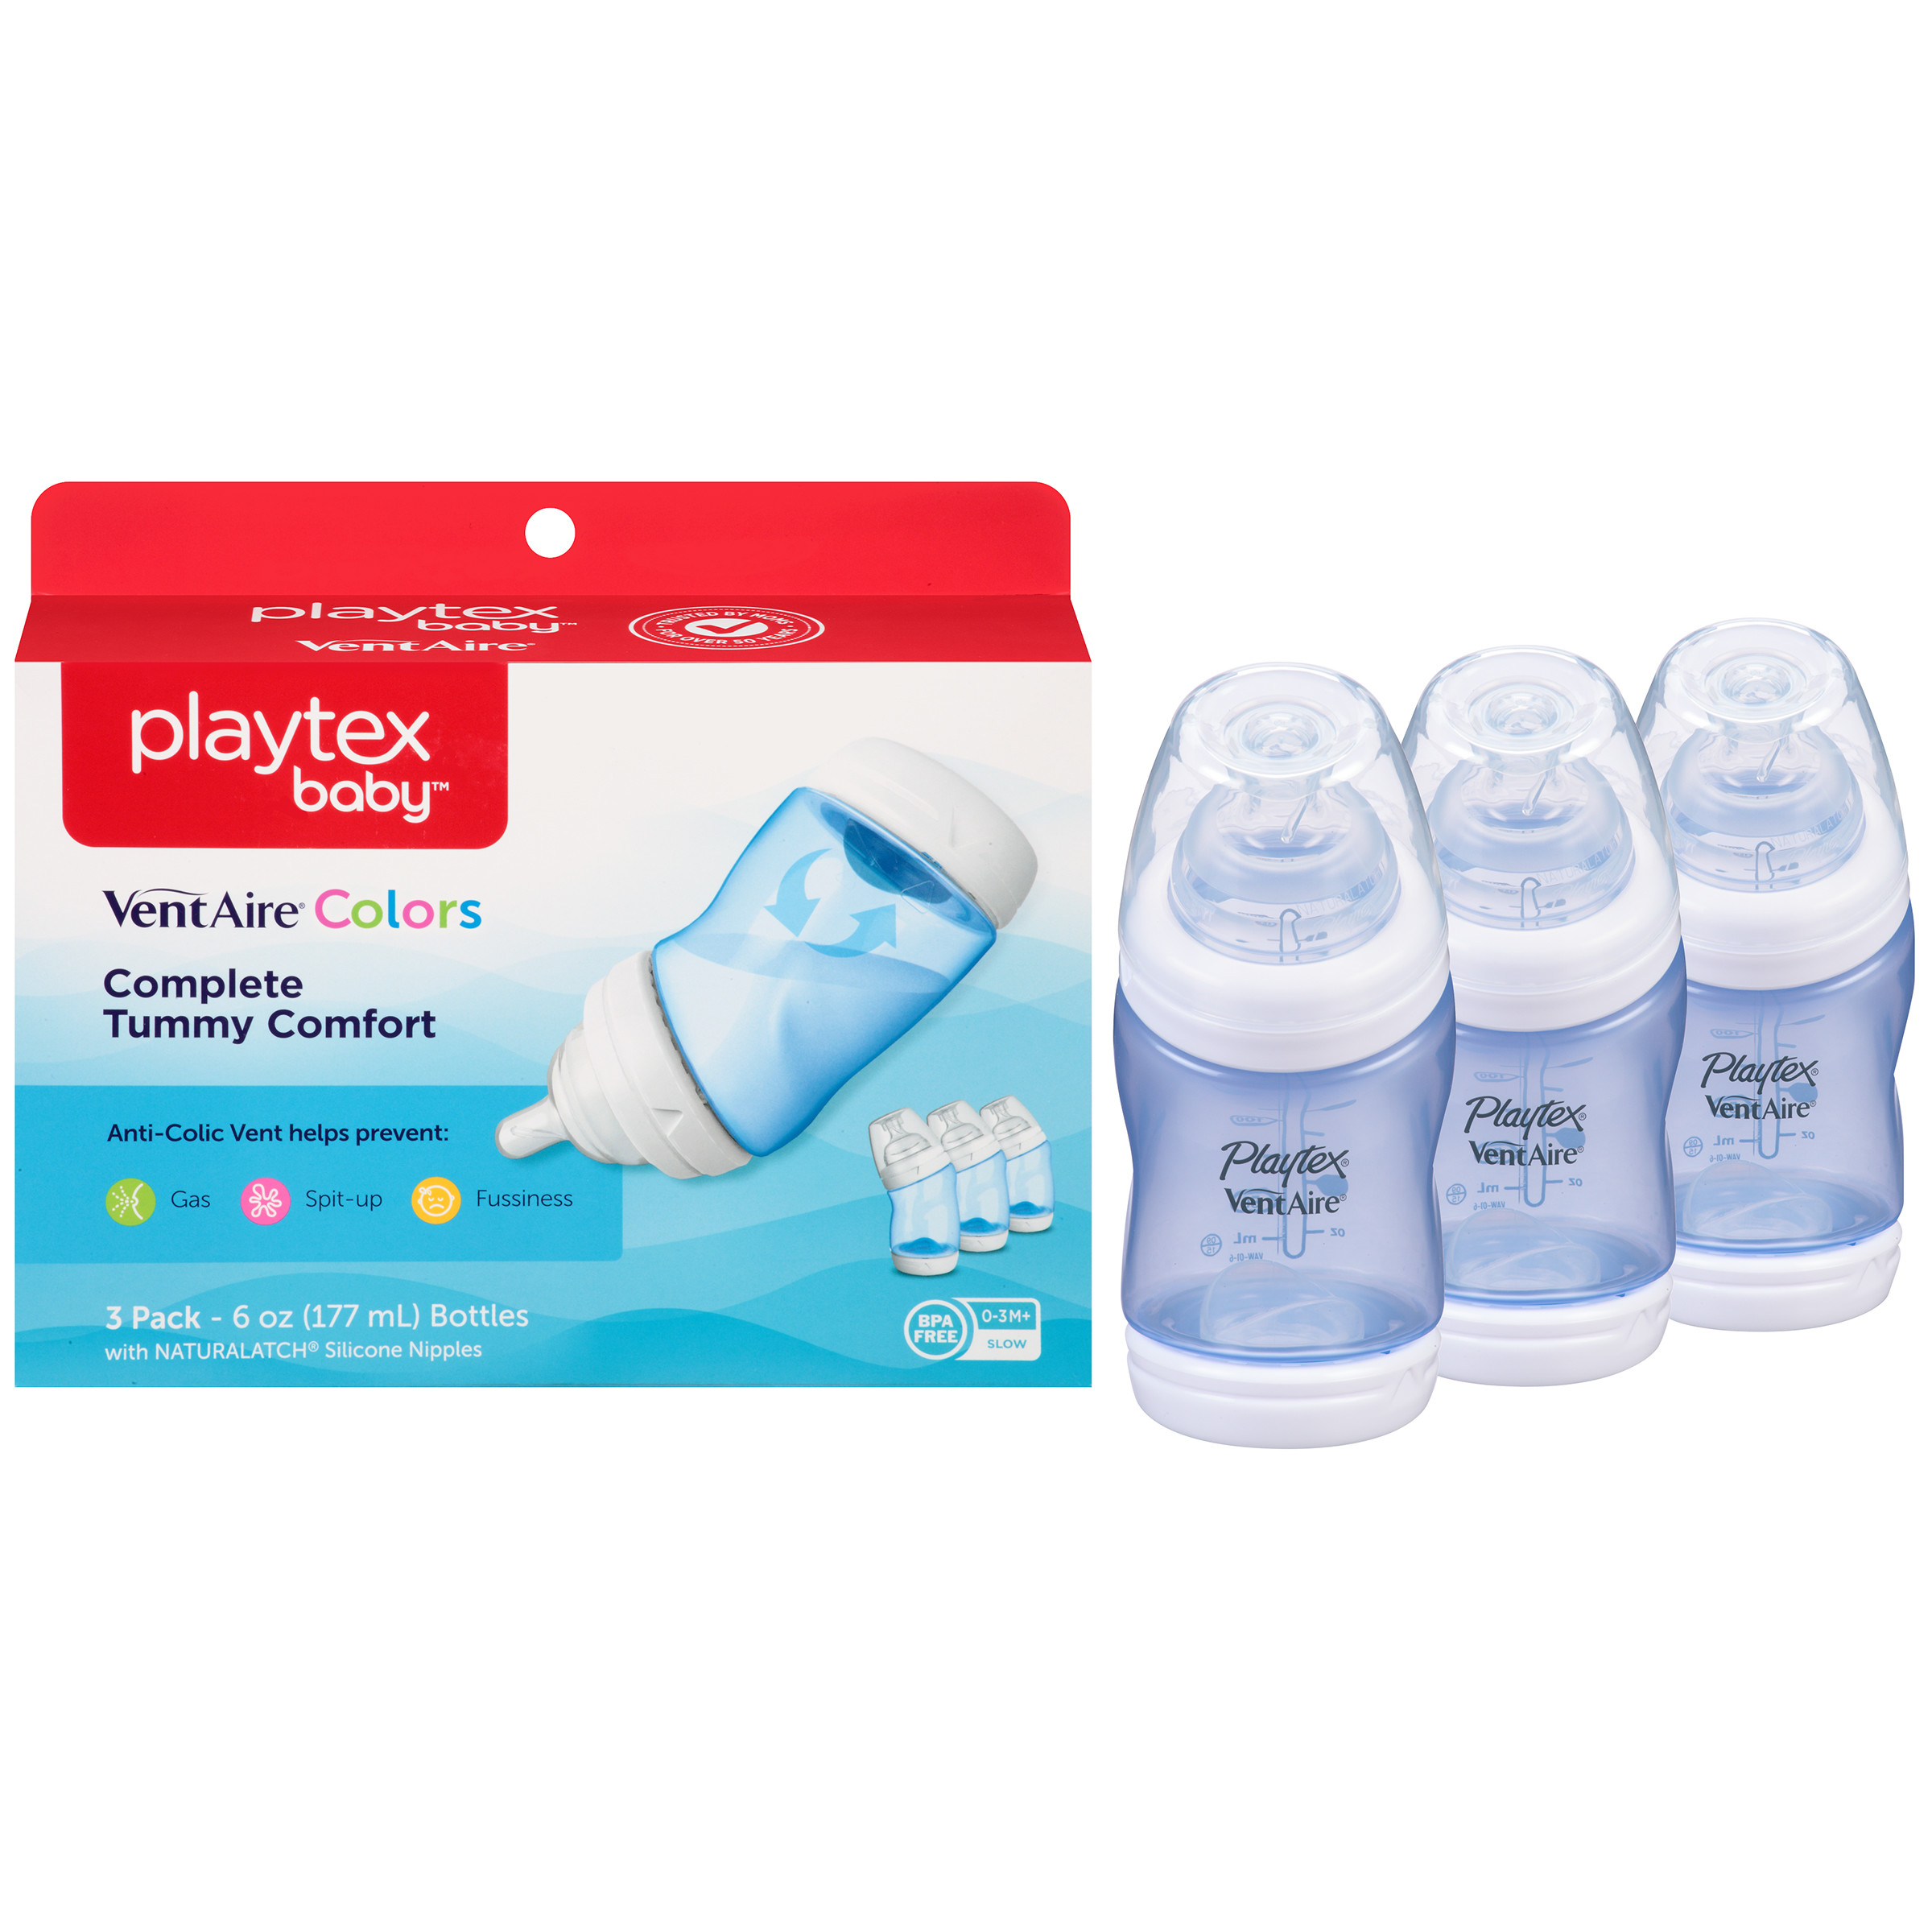 Playtex Baby VentAire Complete Tummy Comfort 6oz 3-Pack Blue Baby Bottle